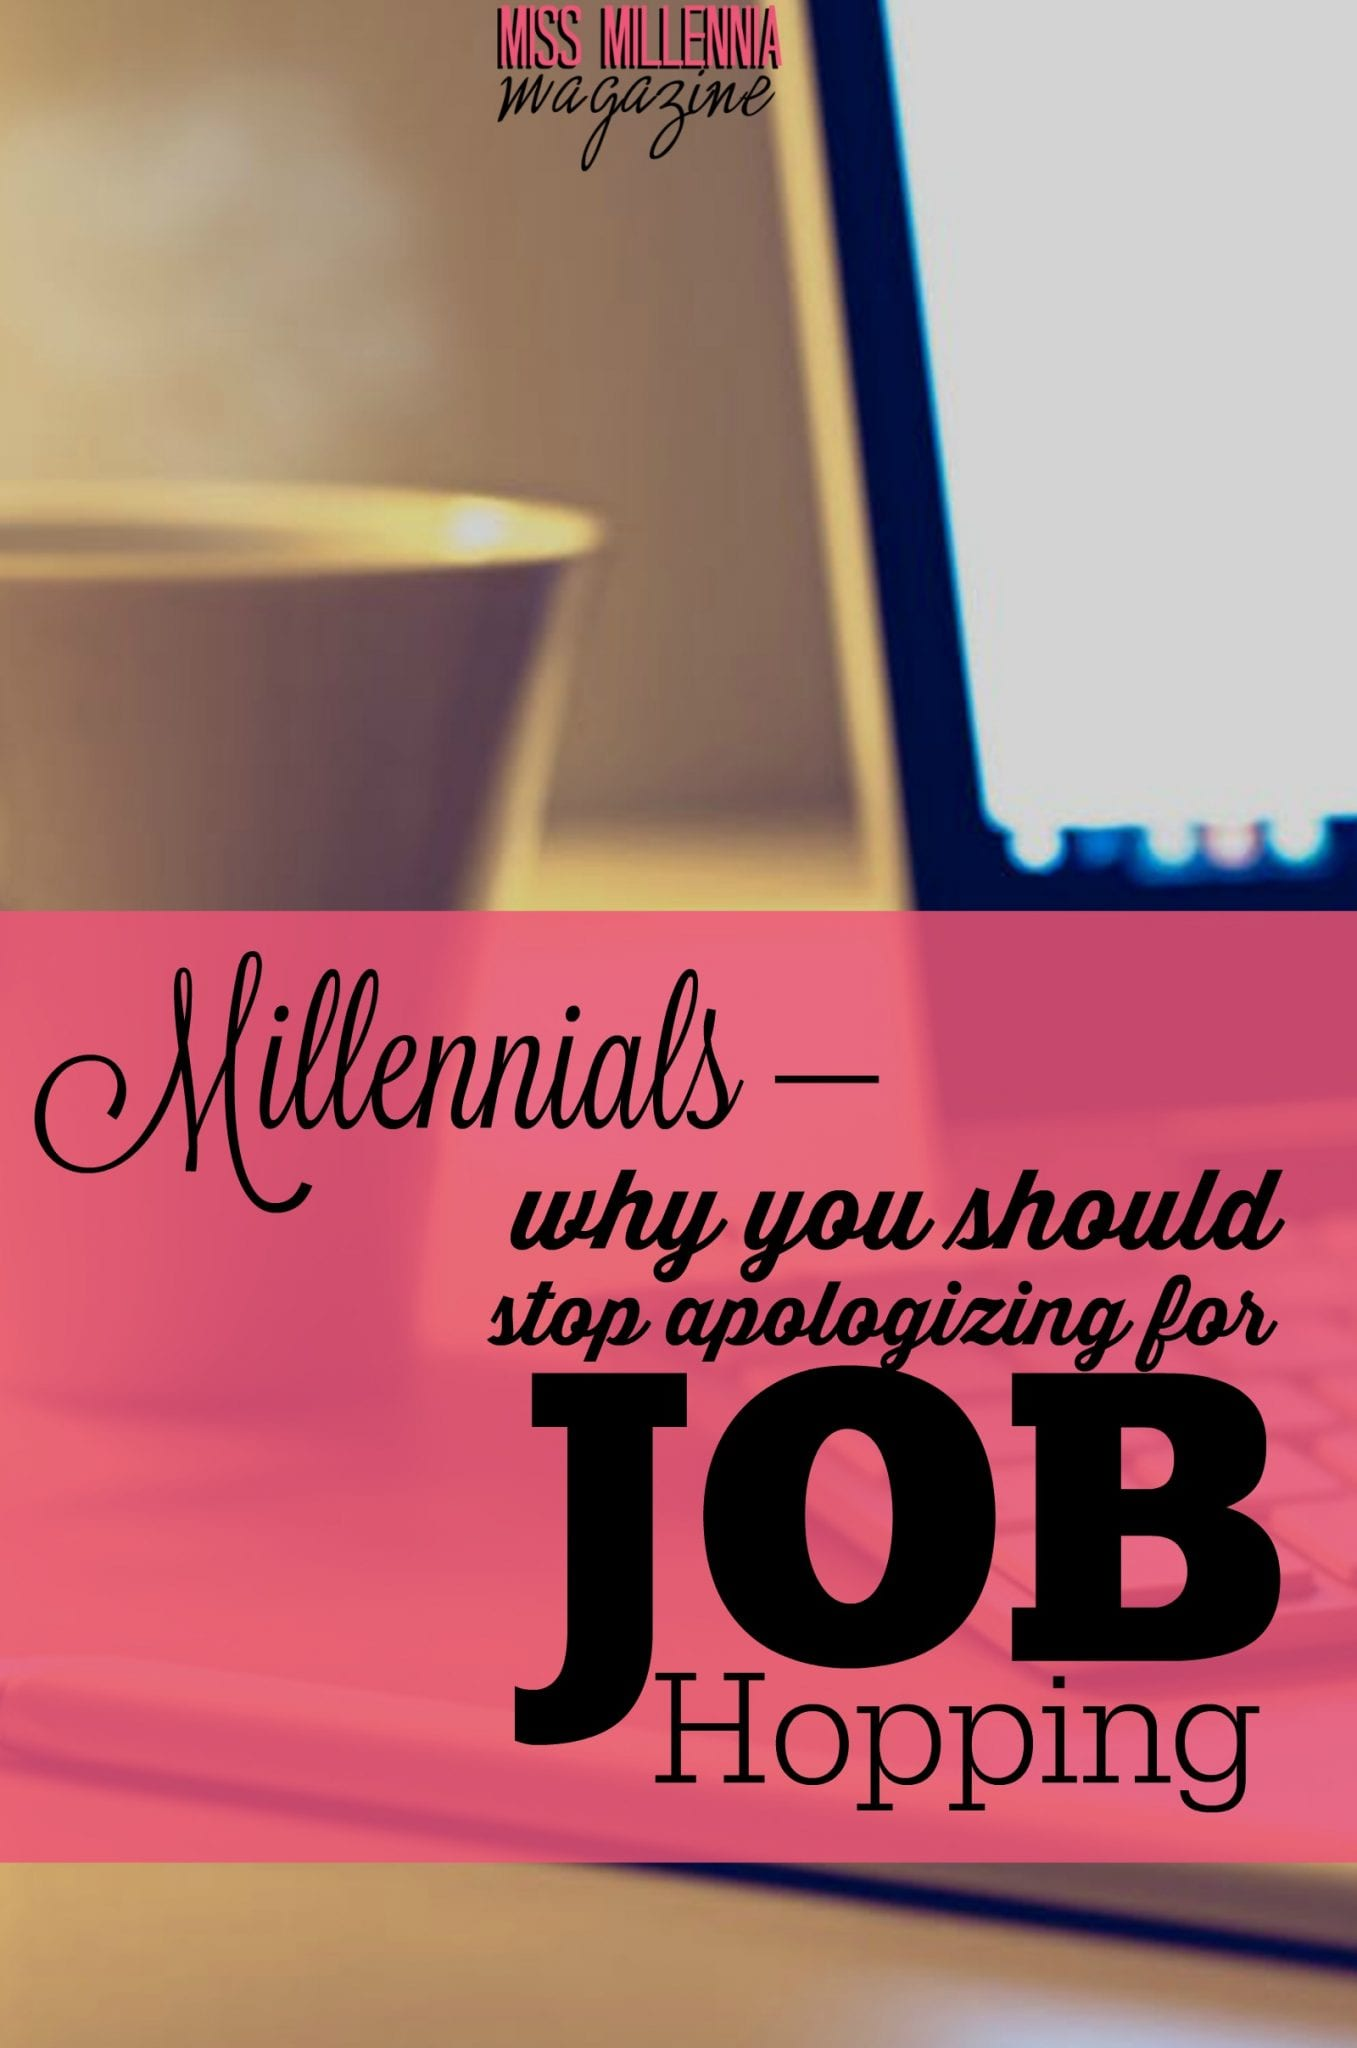 Us millennials have been given a bad rep in the employment industry. Here are some  reasons millennials choose to do job hopping &why they are right to.